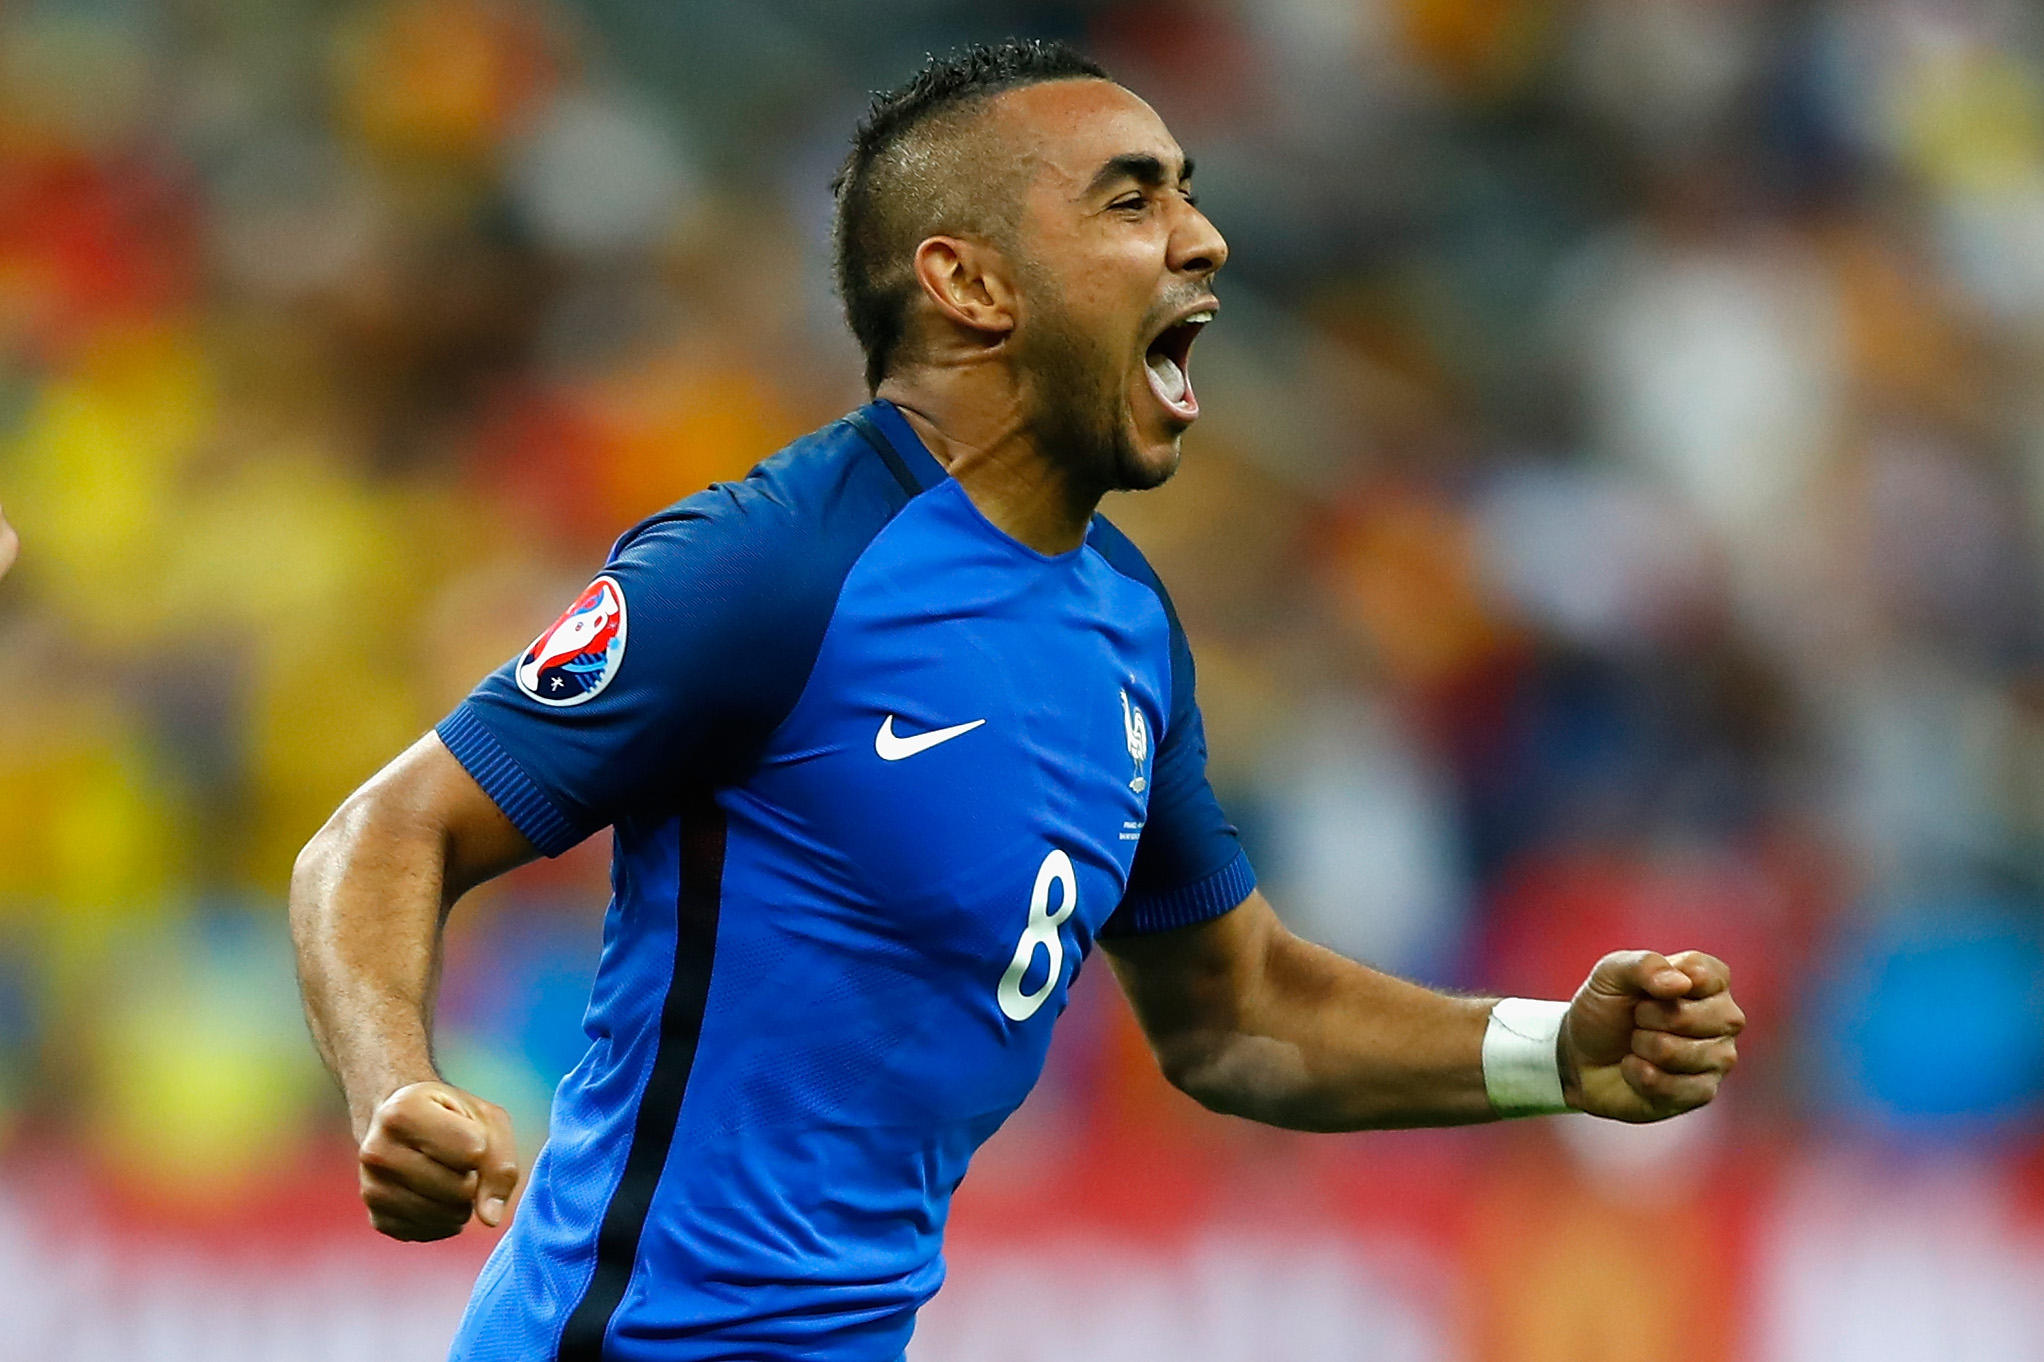 West Ham's Dimitri Payet was not in Seattle Tuesday, he was busy with France.